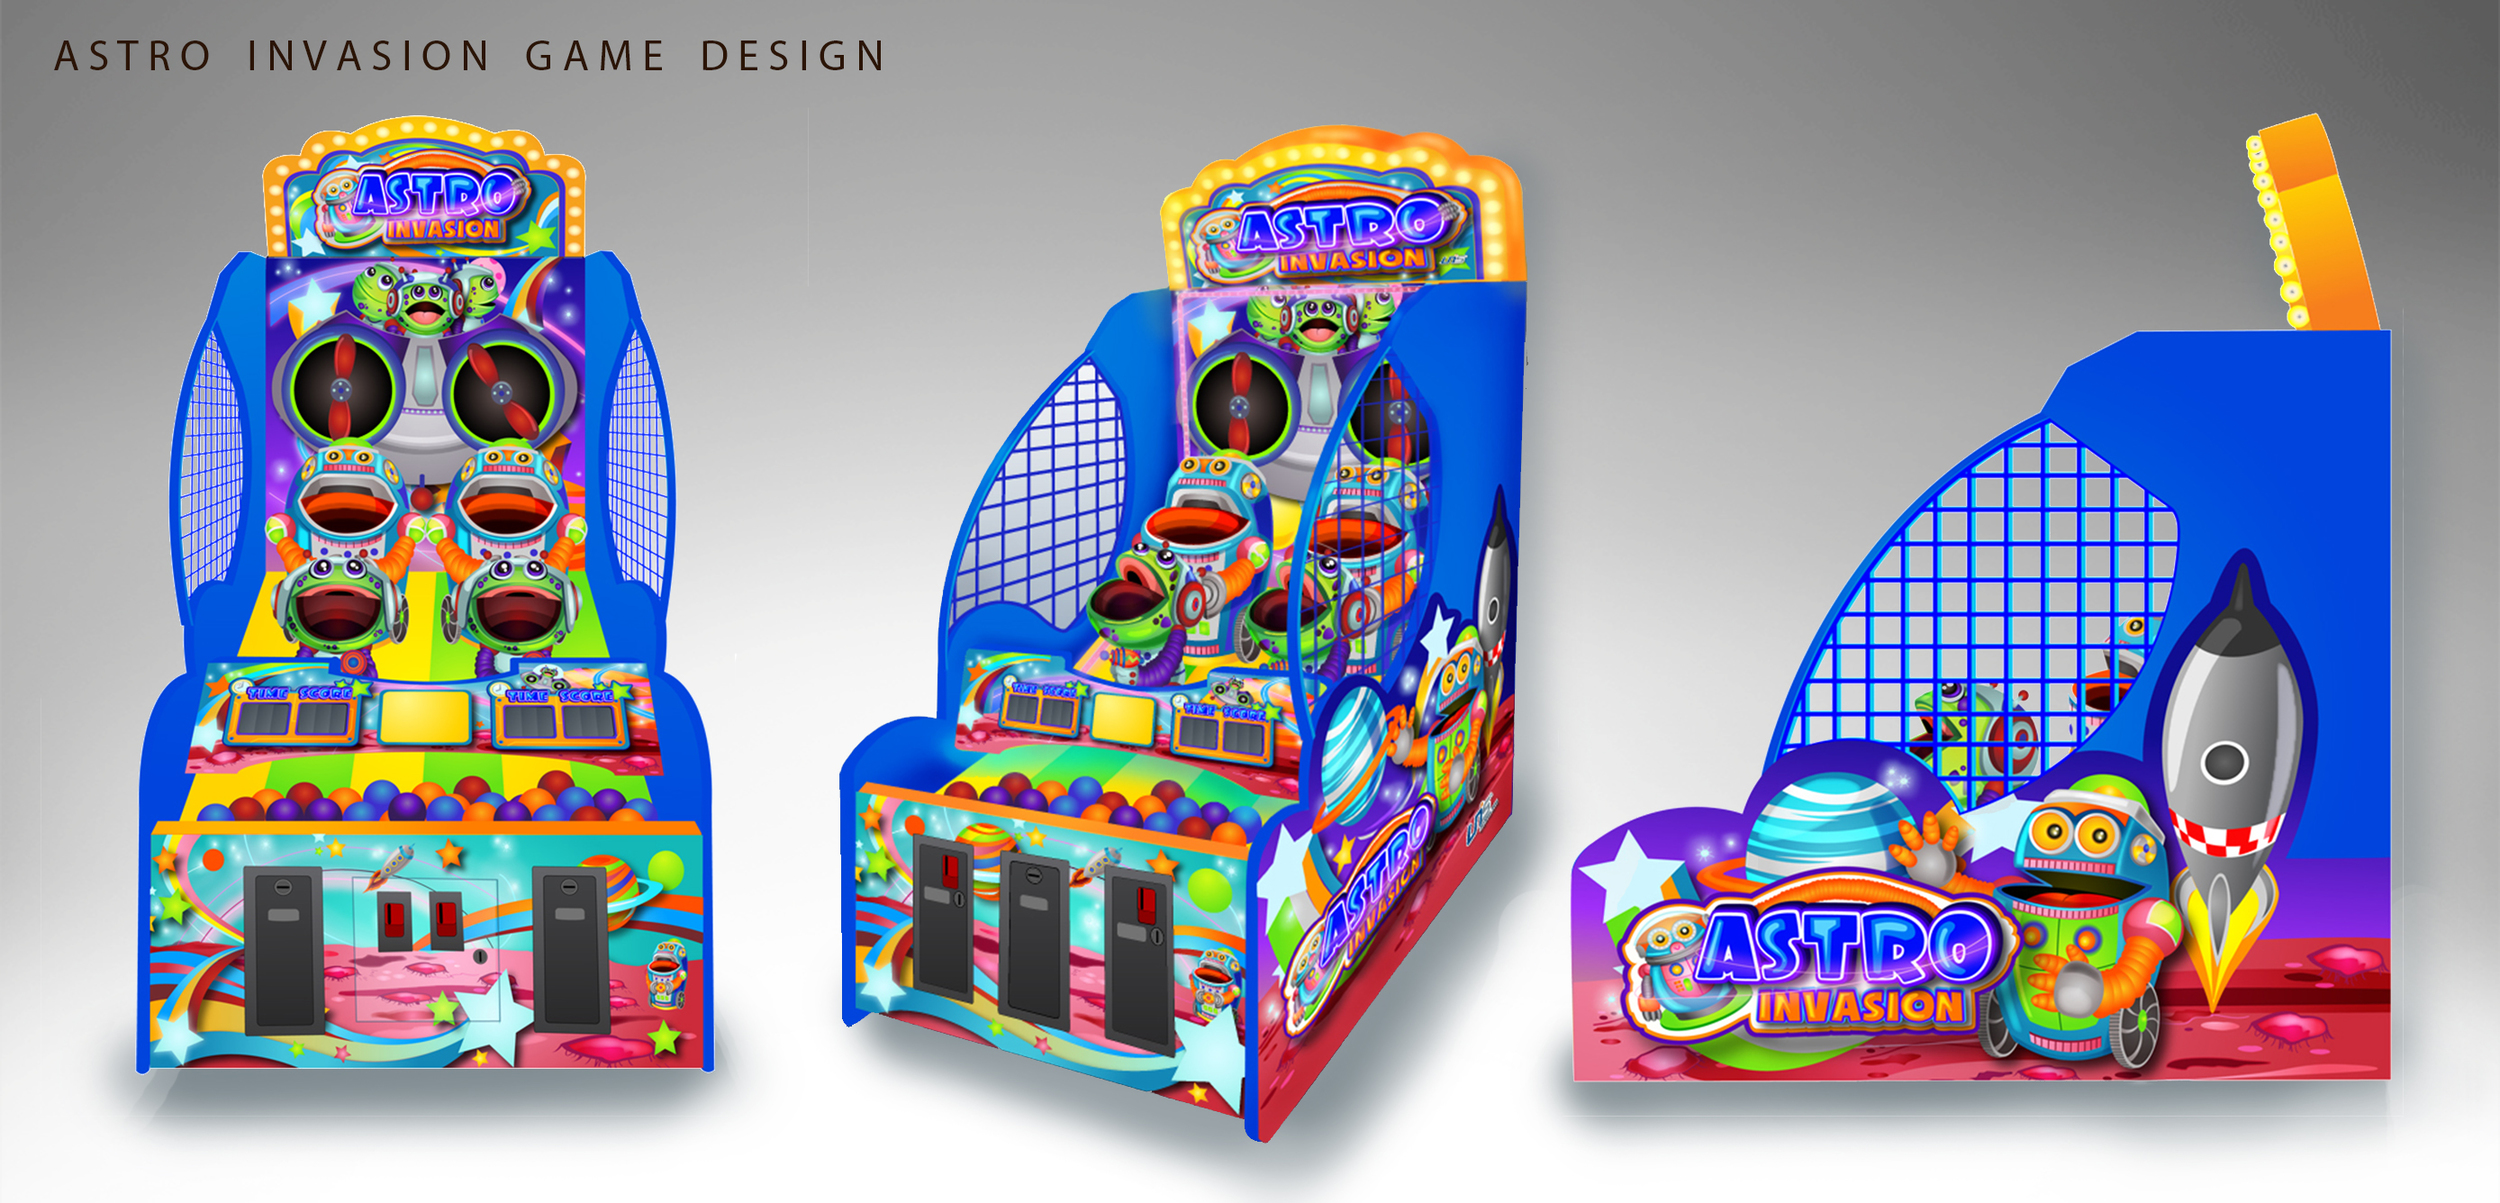 Design of cabinet shape, characters, logos and graphic decals that I came up with for the Astro Invasion ball tossing game.